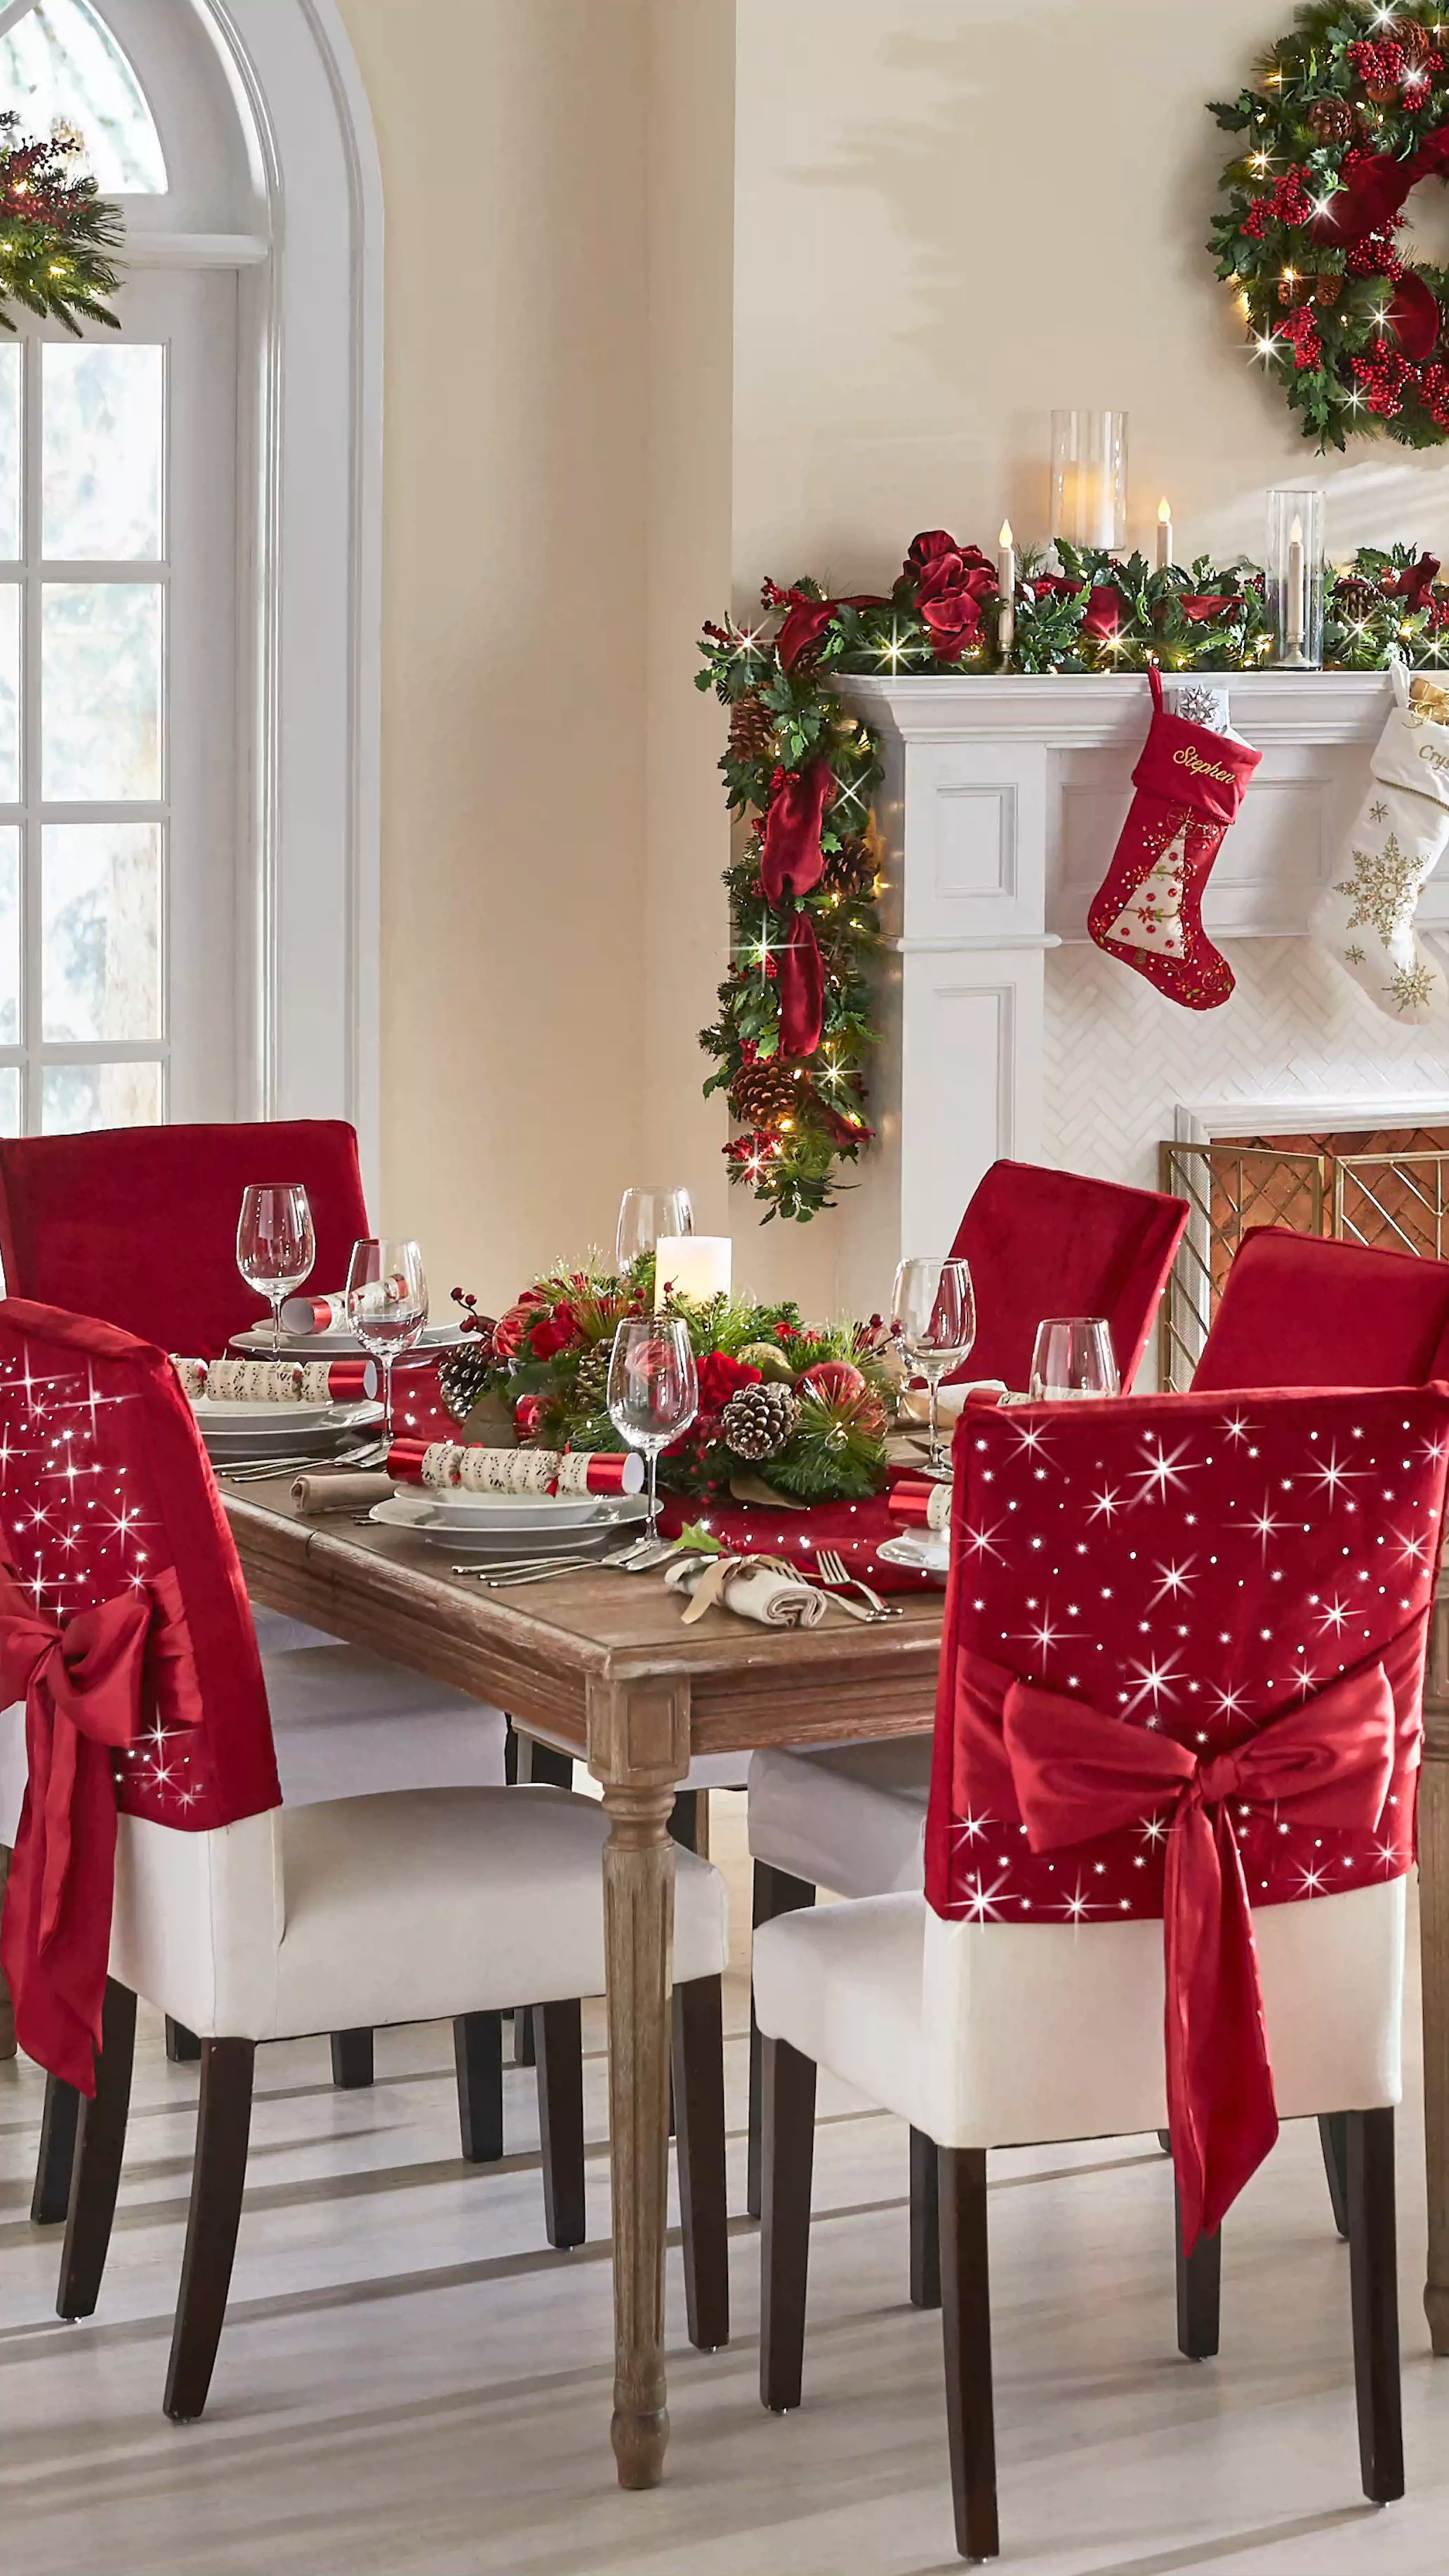 Hammacher Schlemmer Your Source For Unique Seasonal Decor Get Every Inch Of In 2020 Christmas Decorations Easy Christmas Decorations Indoor Christmas Decorations